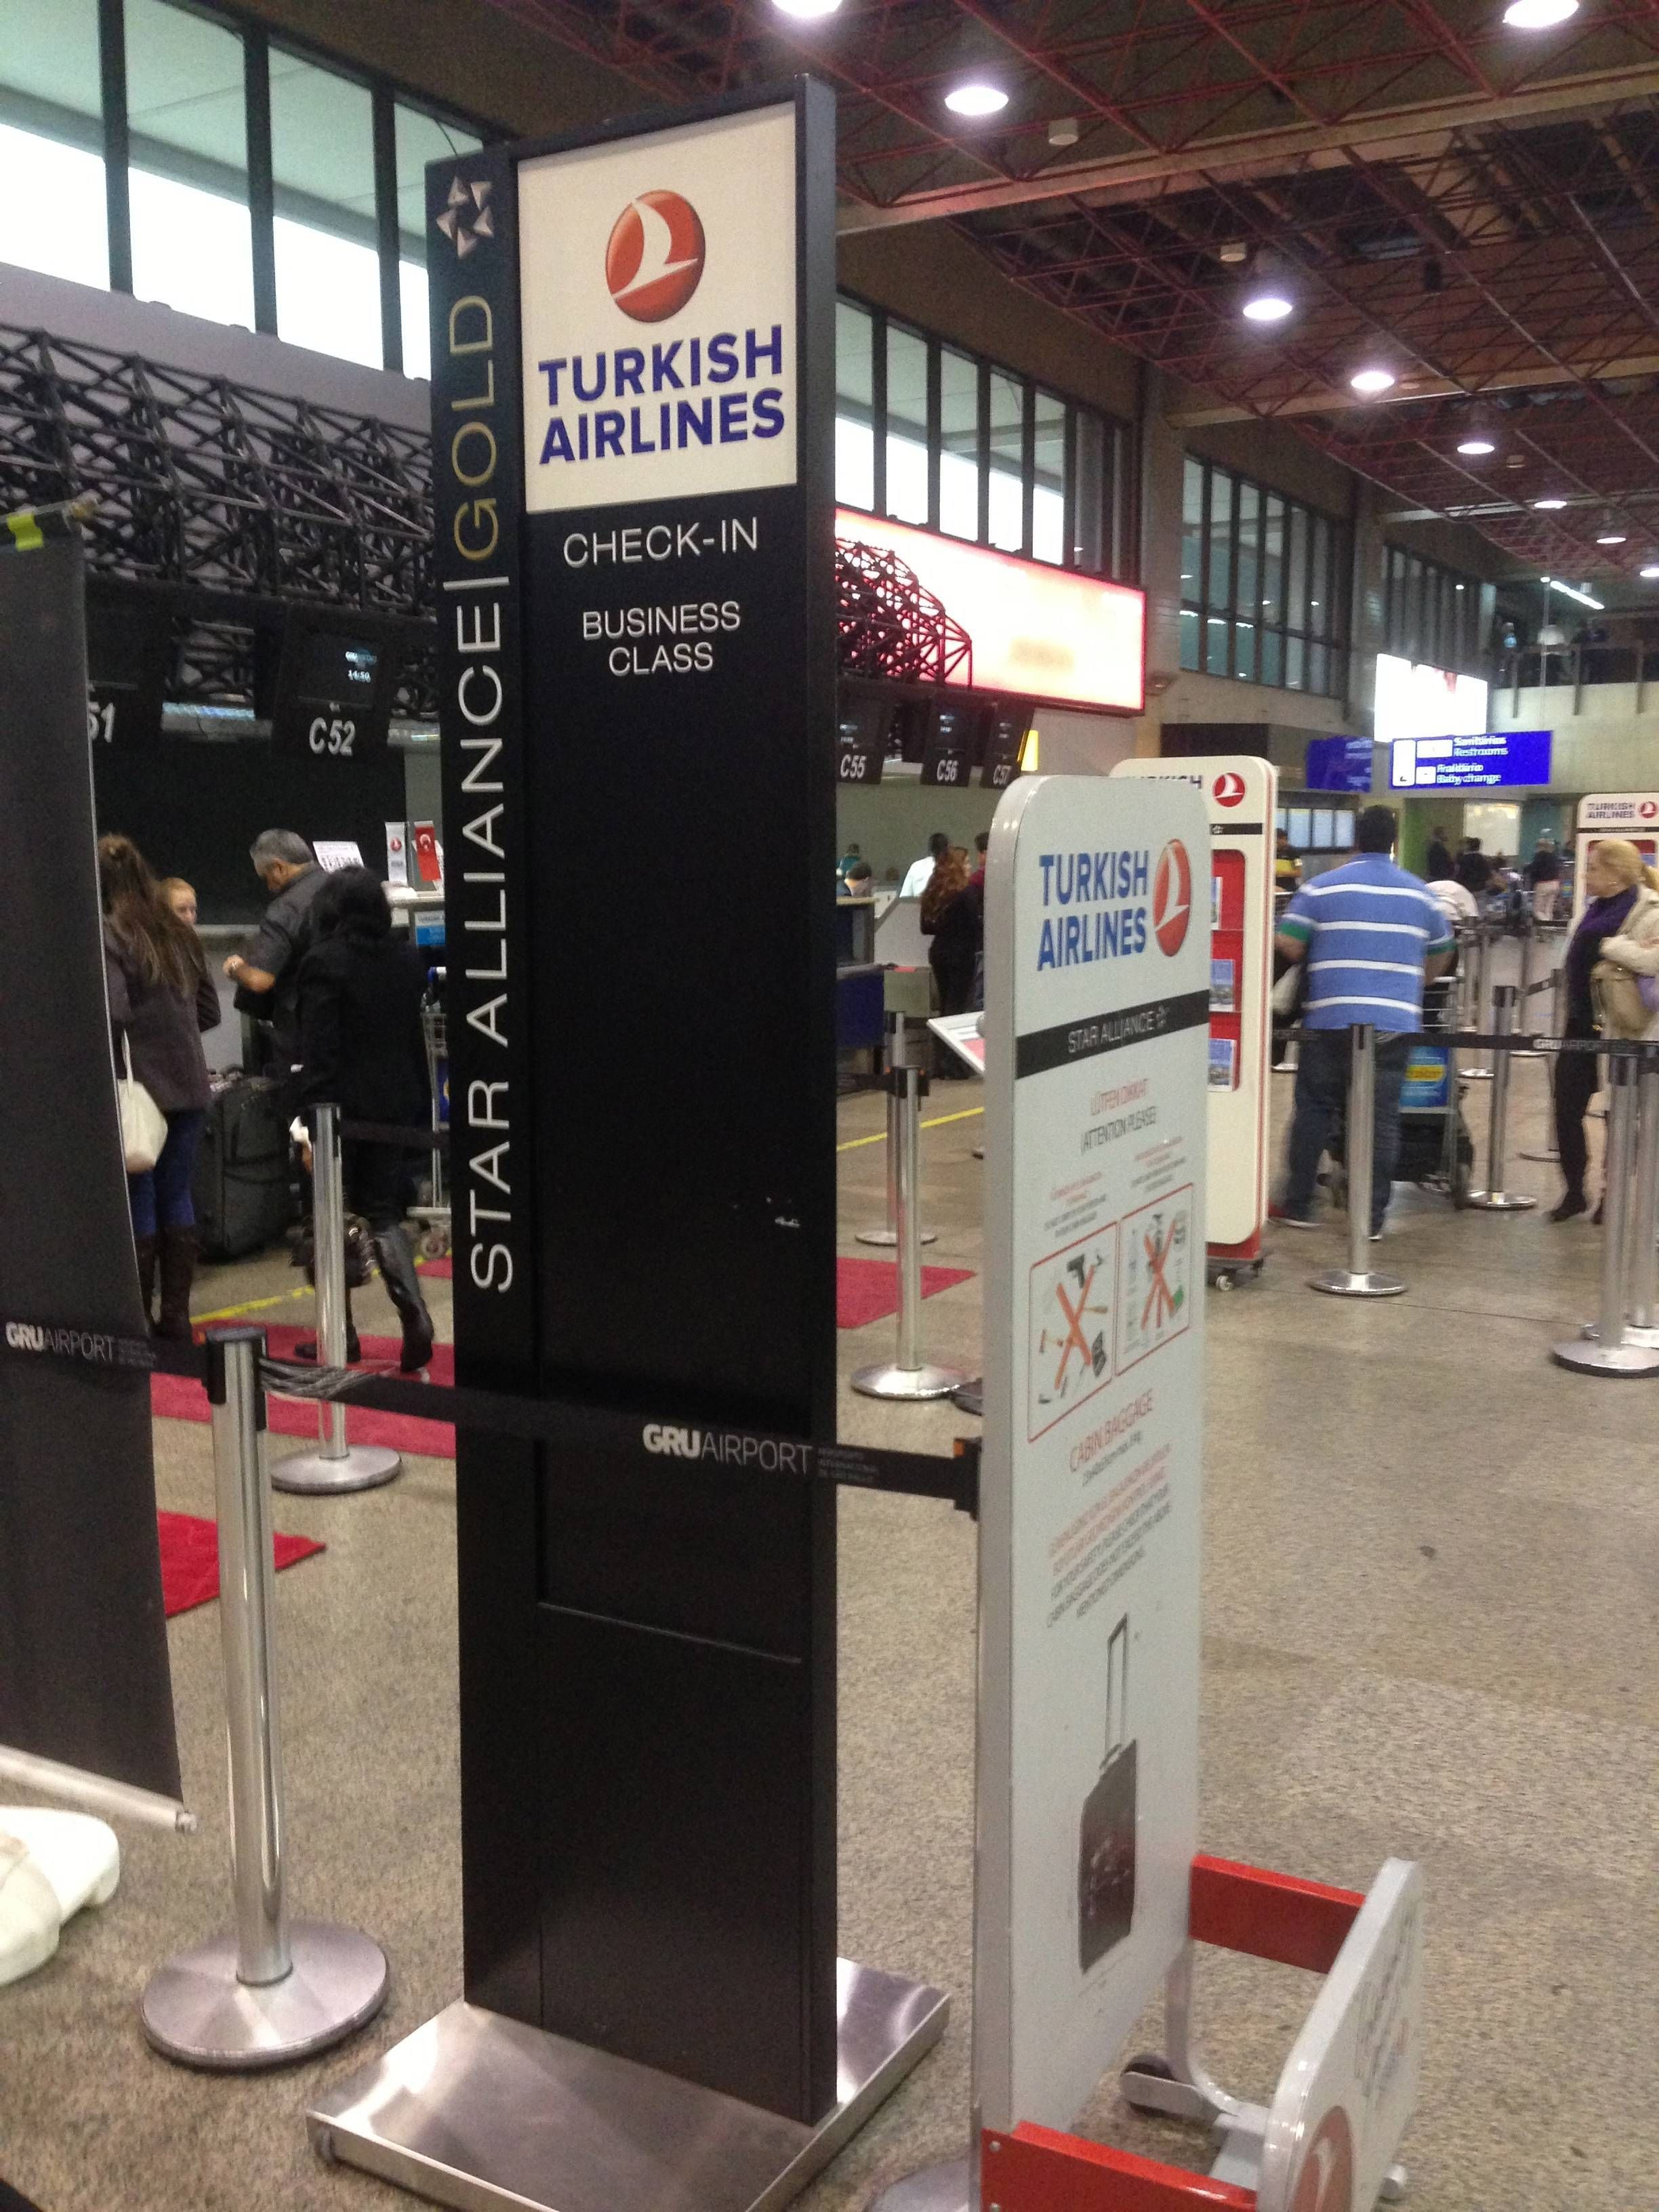 Turkish Airlines checkin executiva